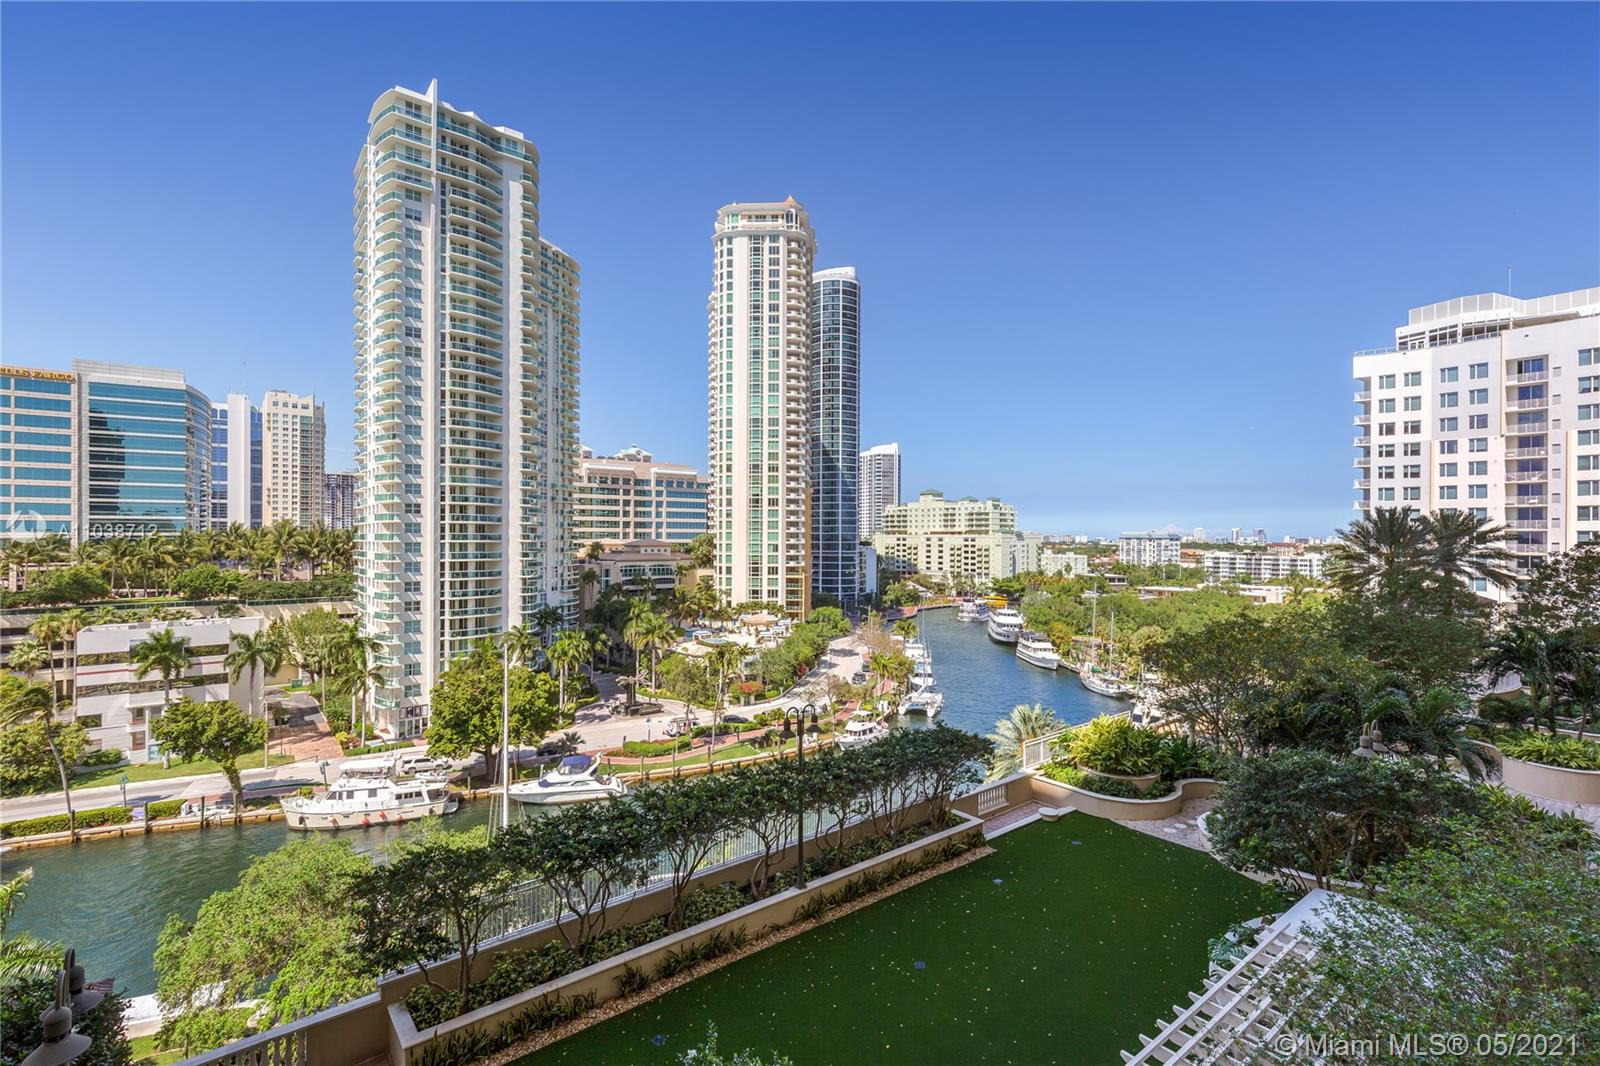 WaterGarden #2207 - 347 N New River Dr E #2207, Fort Lauderdale, FL 33301